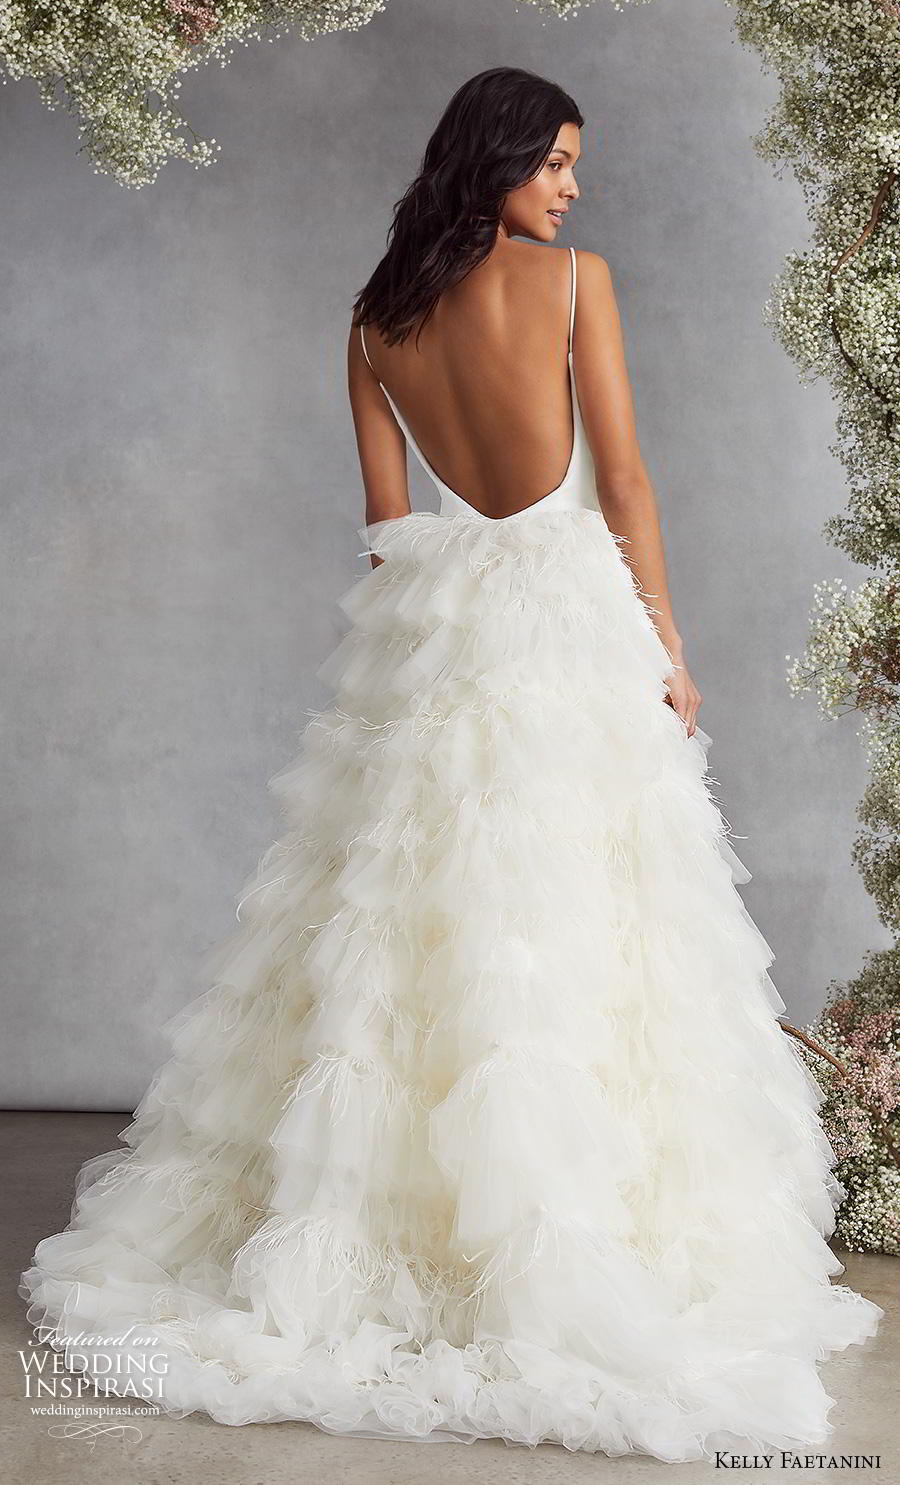 kelly faetanini fall 2020 bridal sleveeless spaghetti strap scoop neckline simple minimalist bodice ruffled skirt romantic a  line wedding dress backless low back sweep train (10) bv